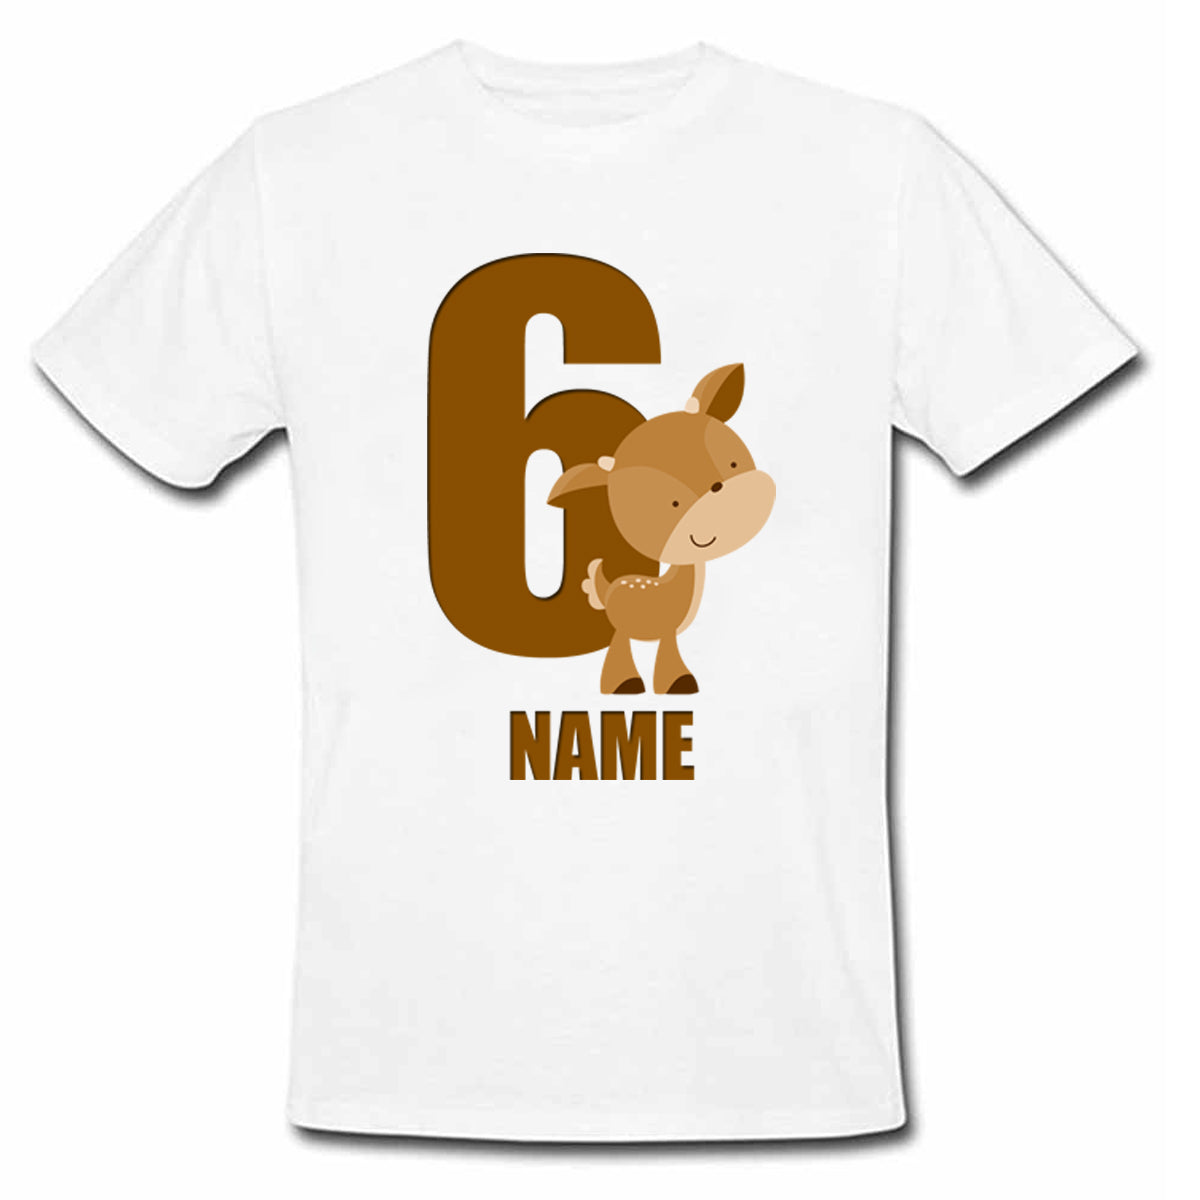 Sprinklecart Customized 6th Birthday Cute Deer Poly-Cotton T Shirt for Kids (White)